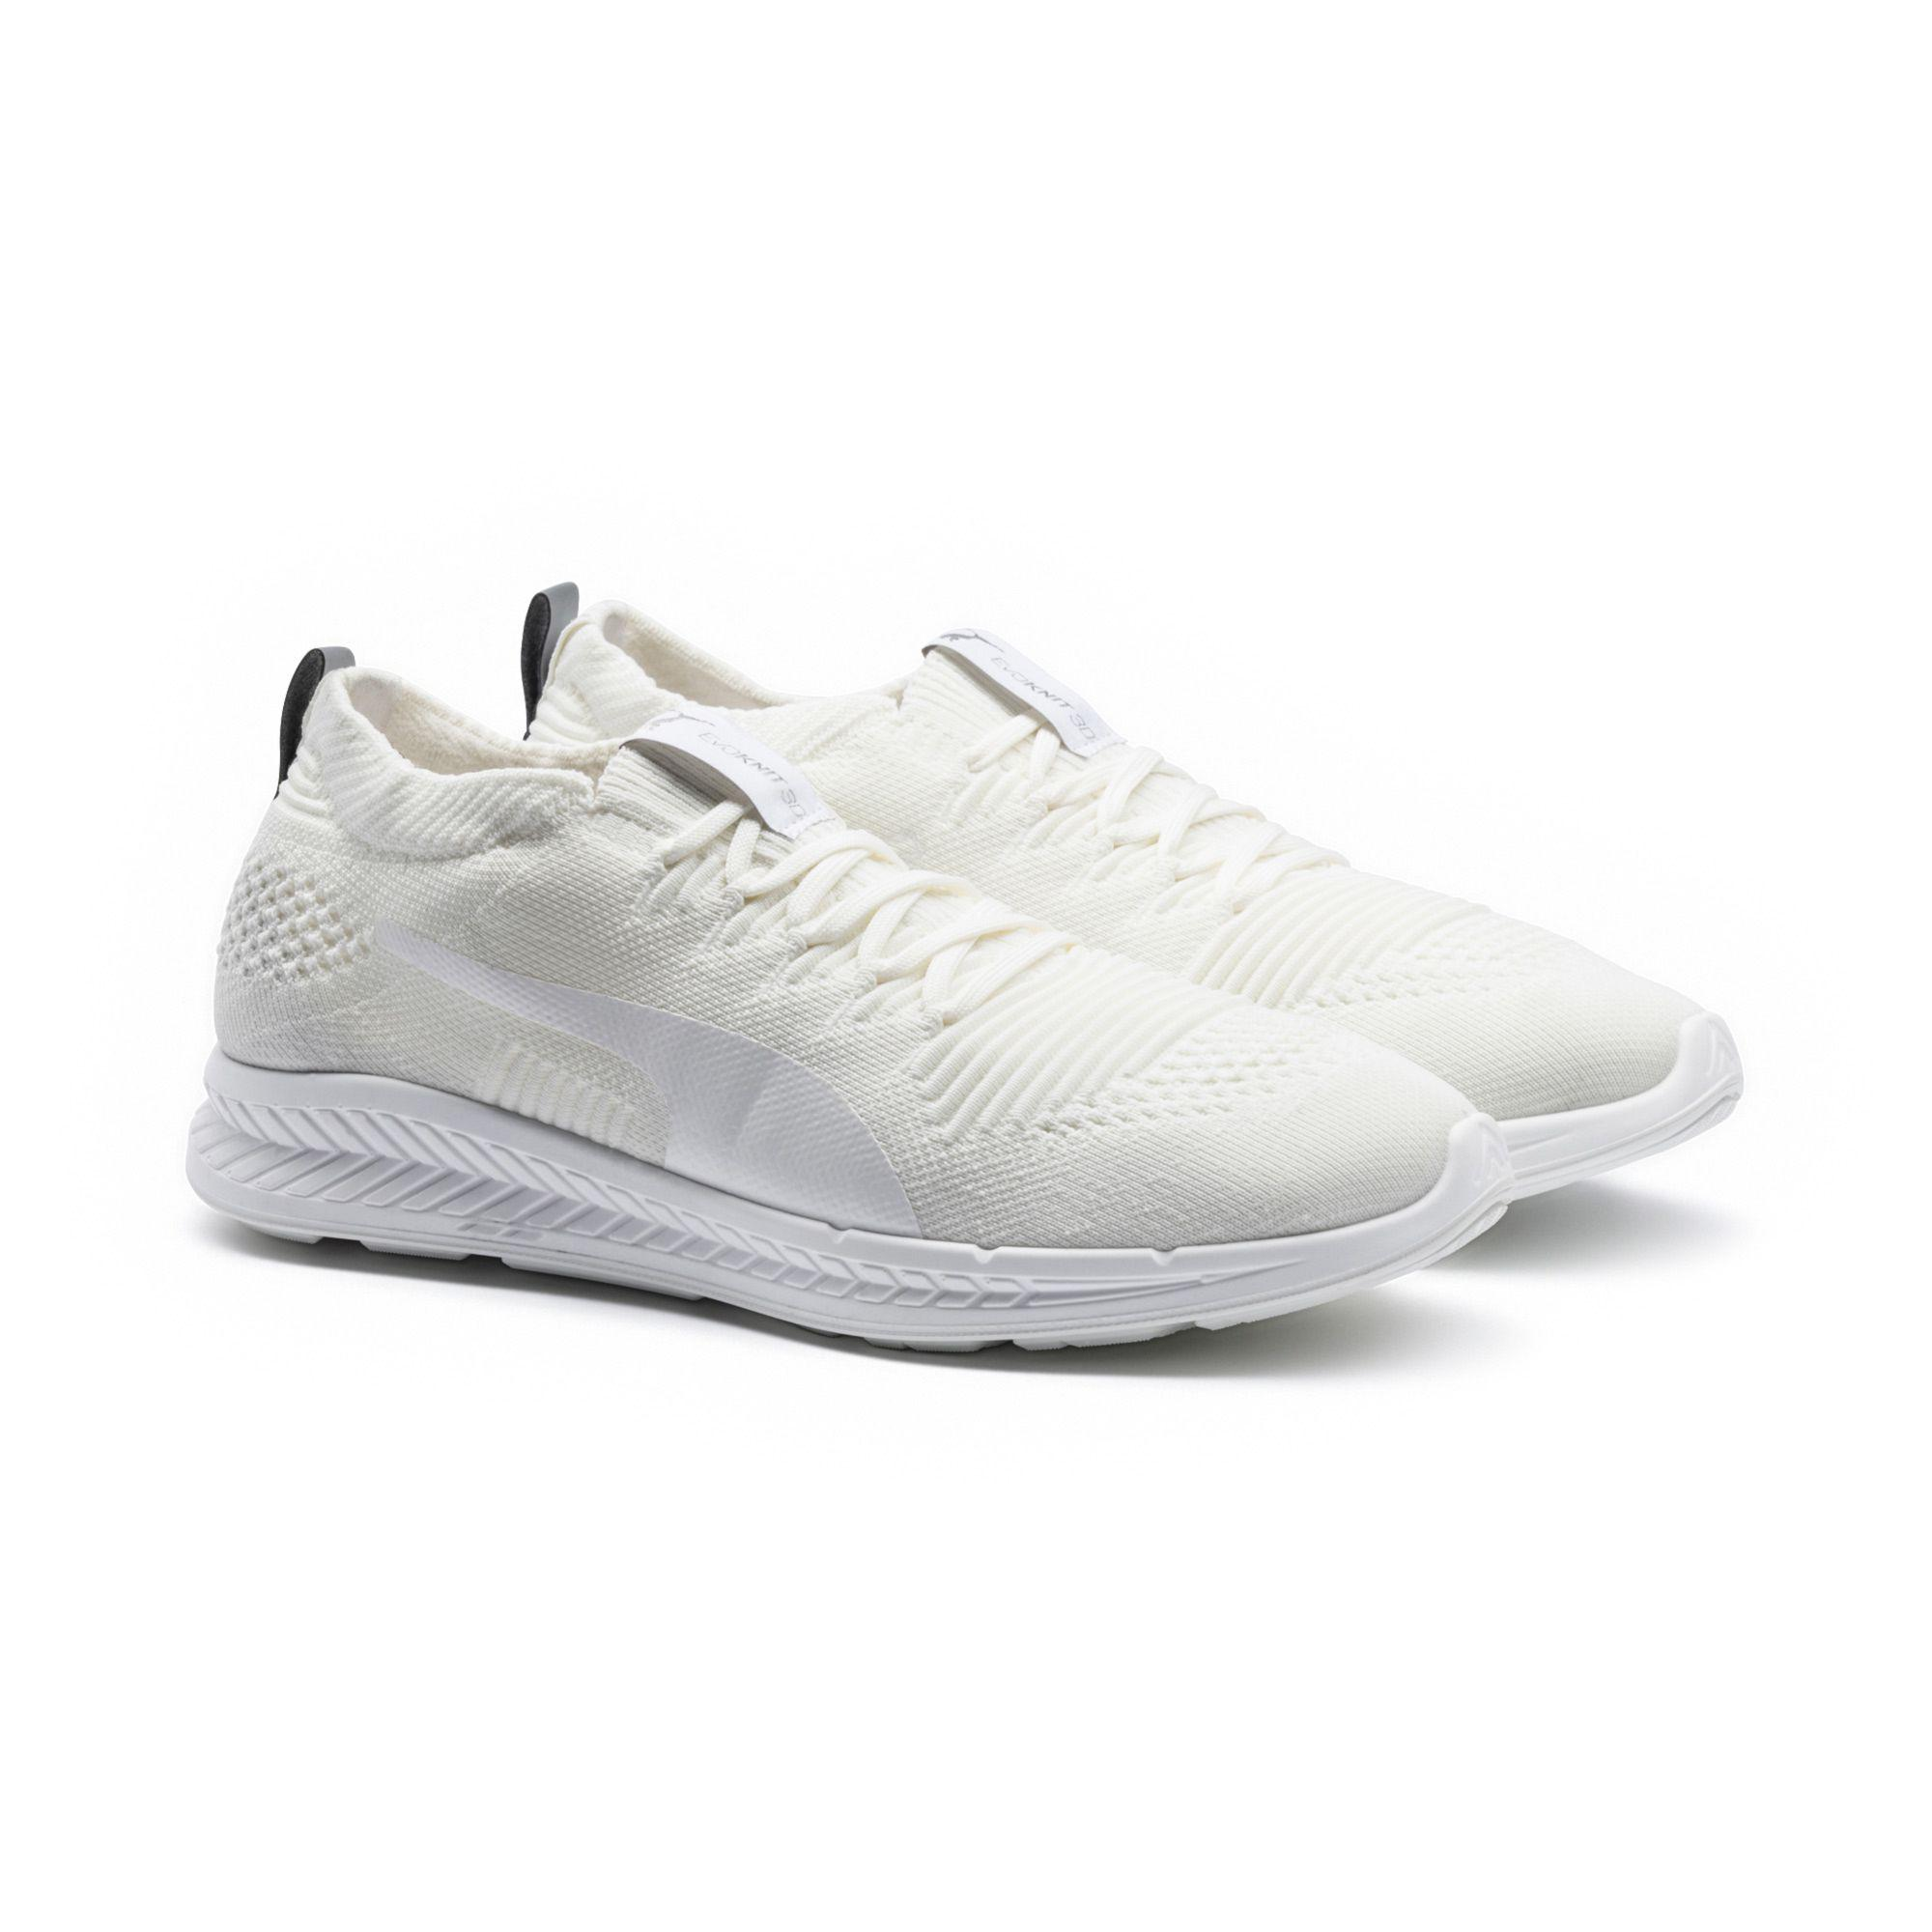 Lyst - PUMA Ignite Proknit Men s Running Shoes in White for Men a8036ef88